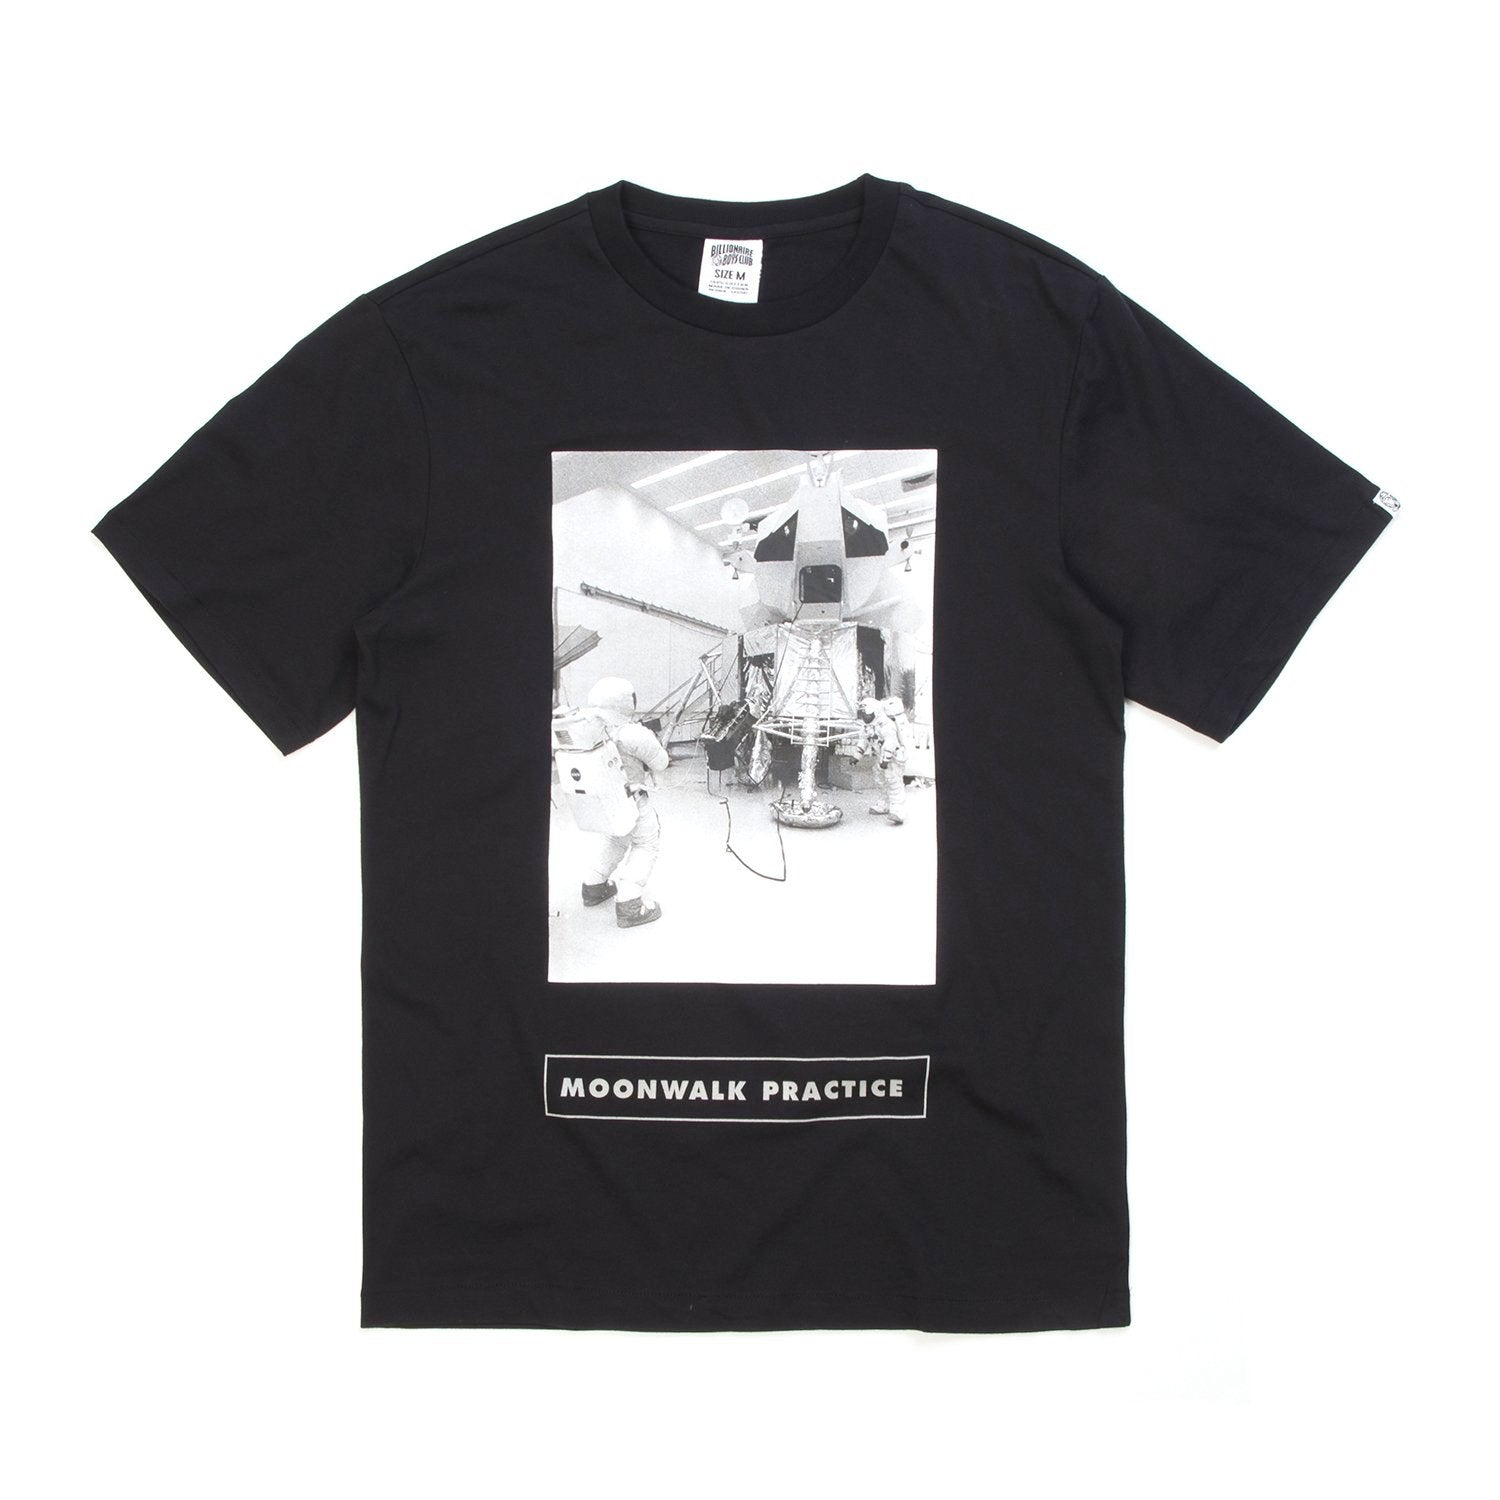 BBC Moonwalk Practice T-Shirt Black